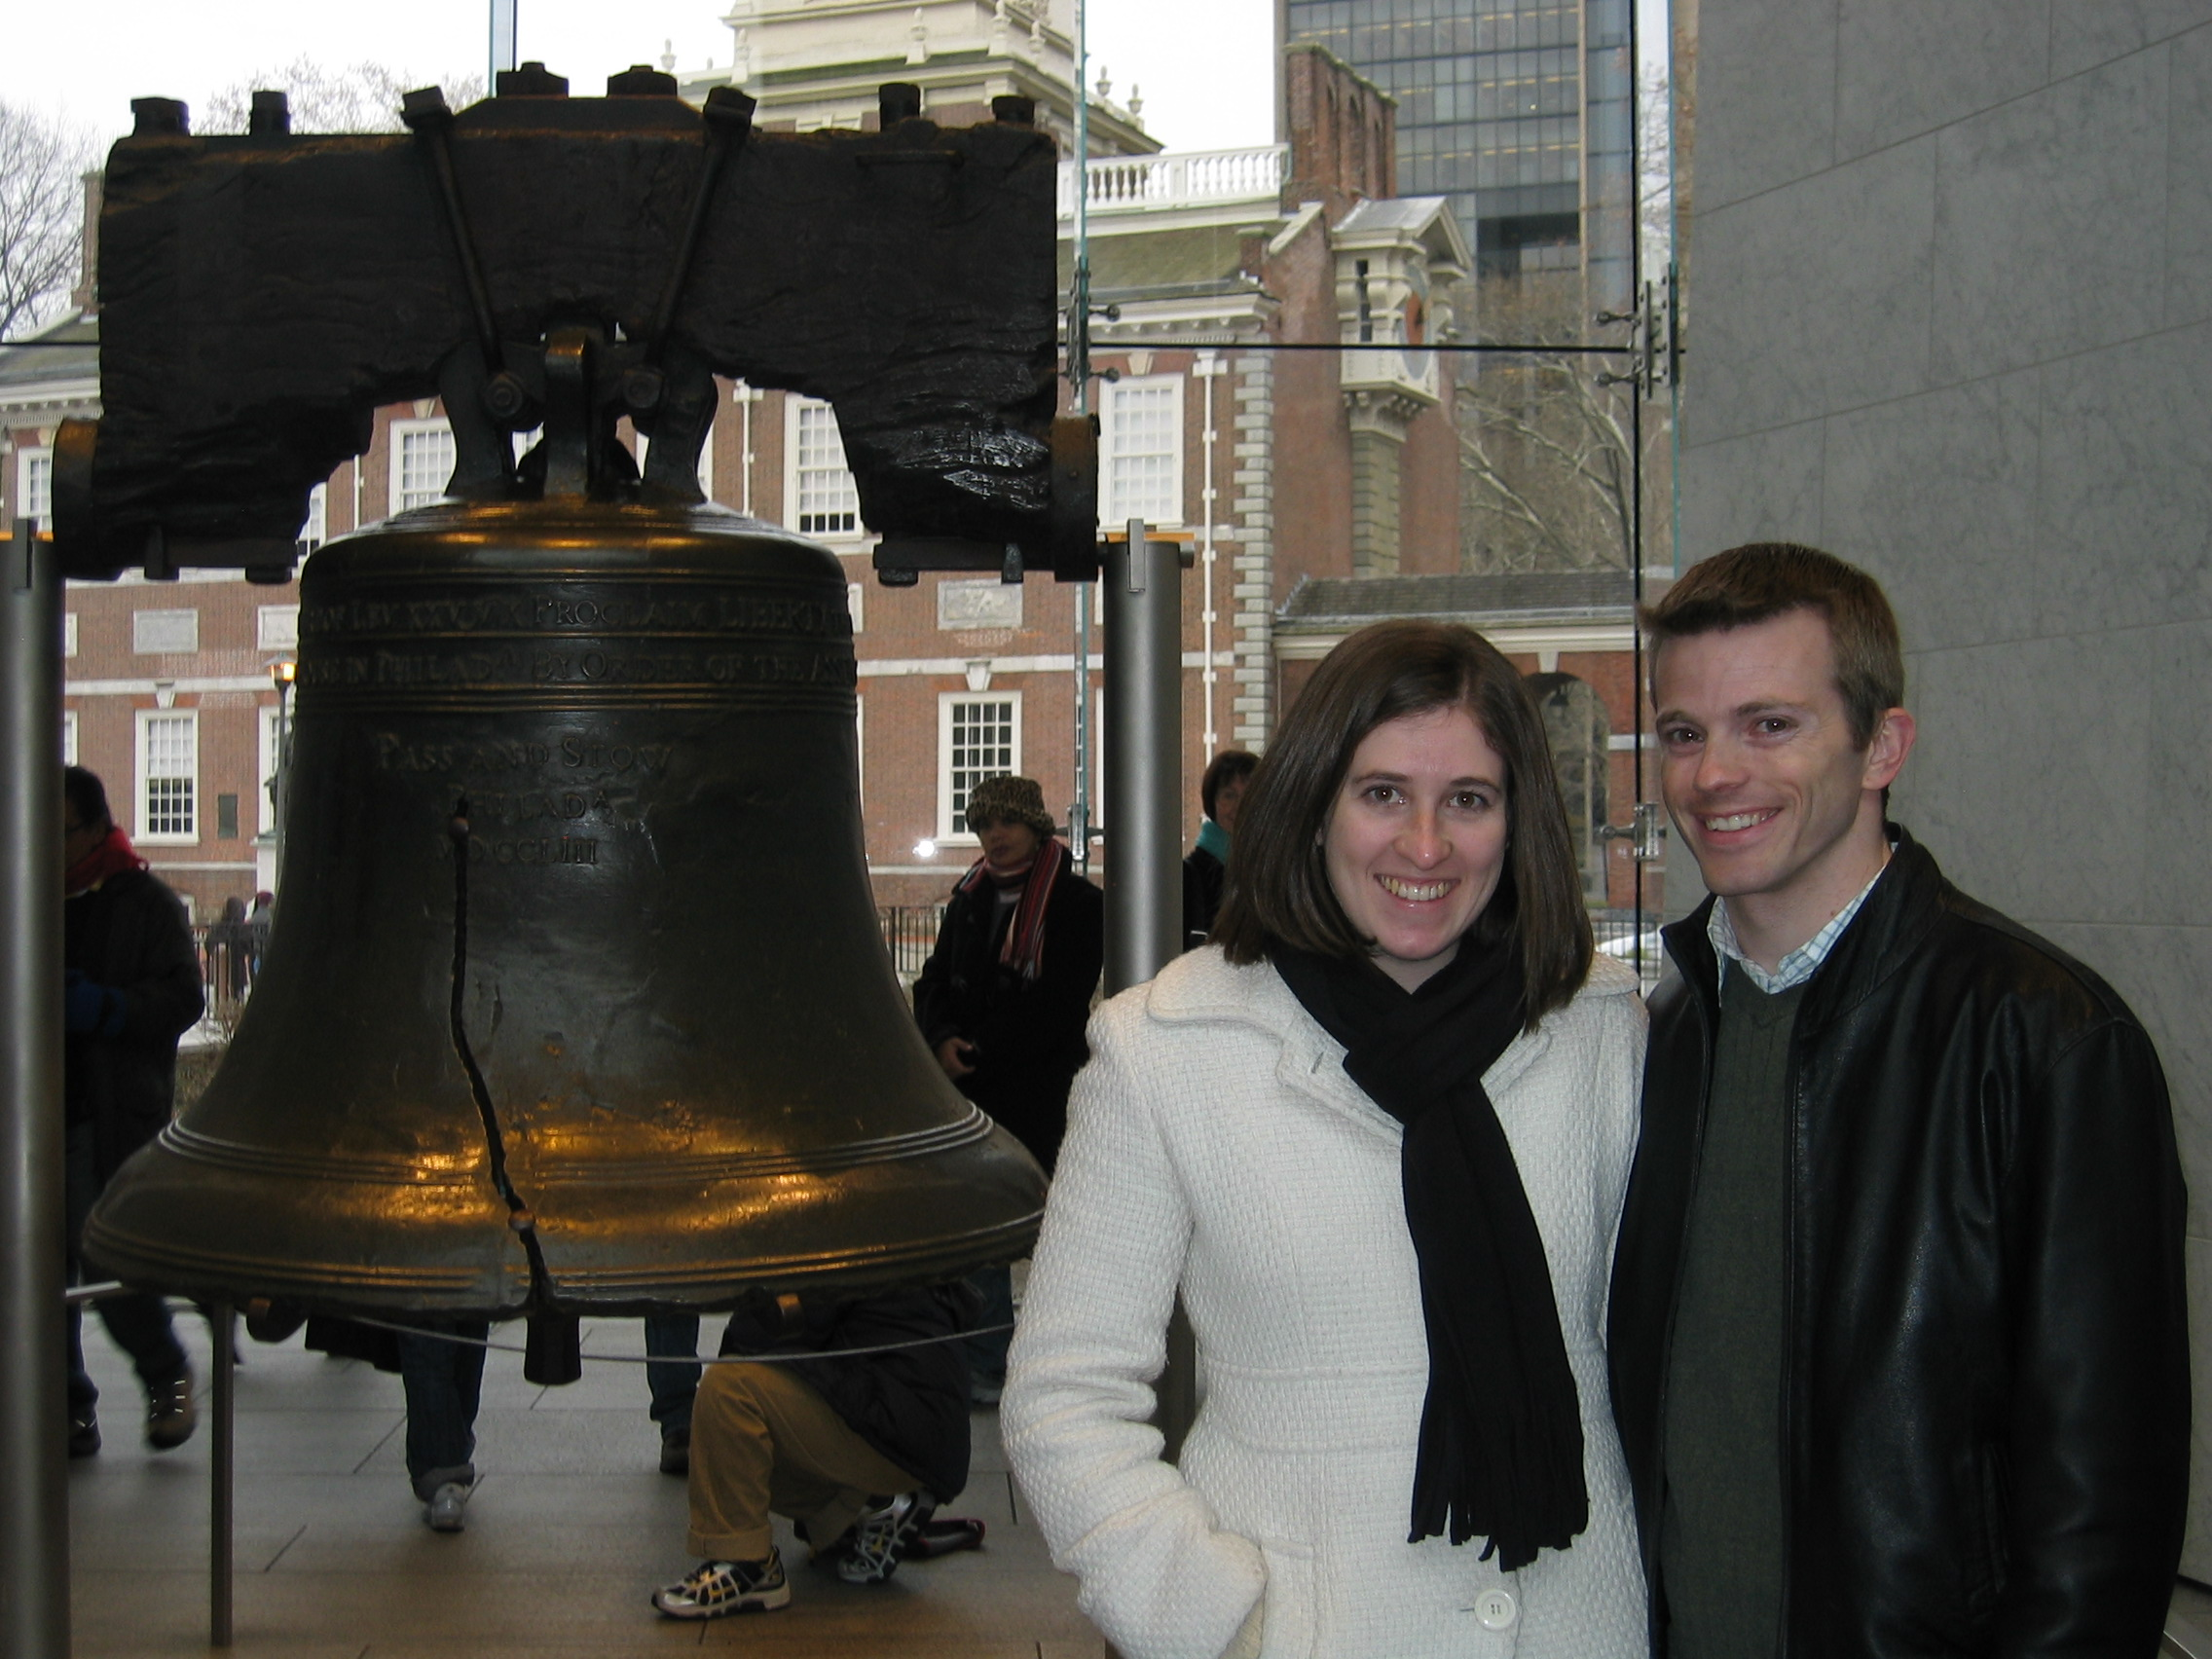 Jason and Kerry in front of the Liberty Bell